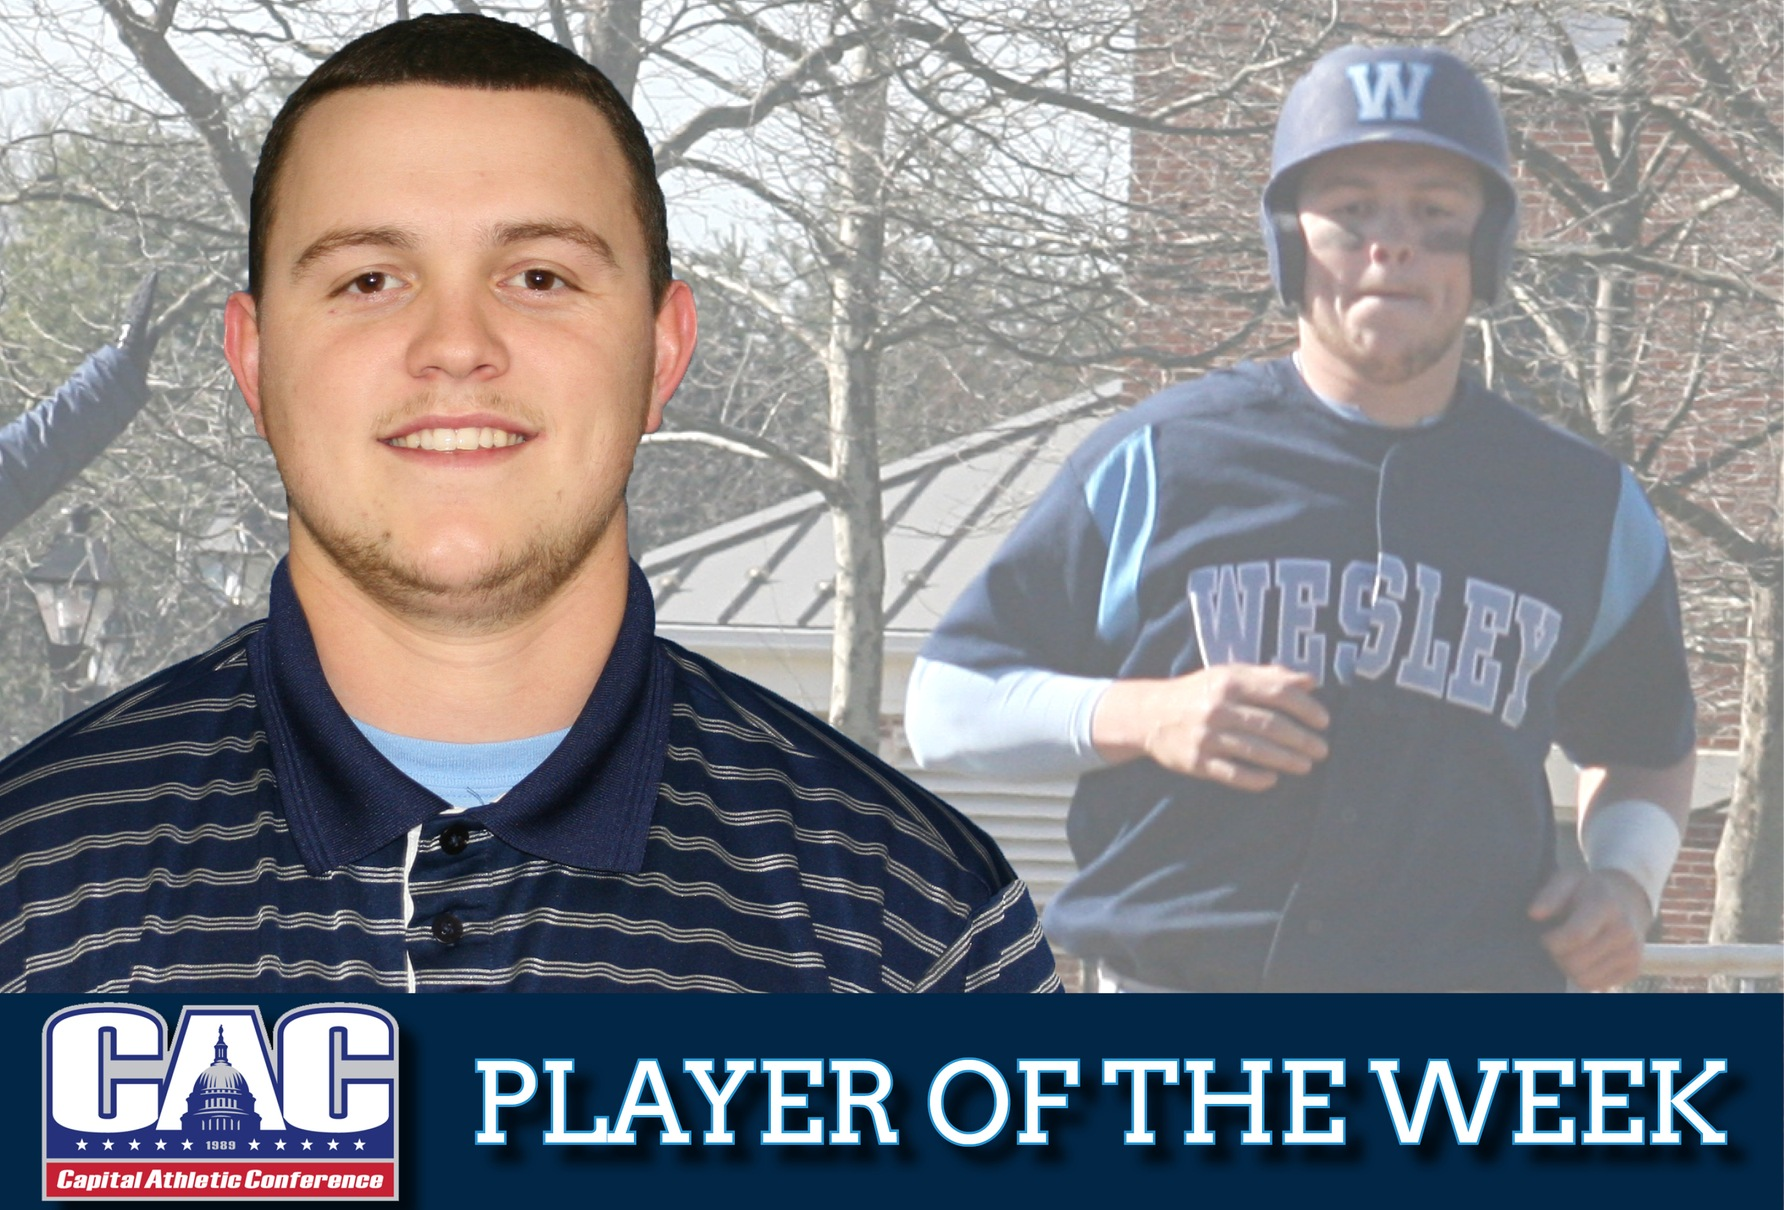 Mears earns second CAC Player of the Week honors